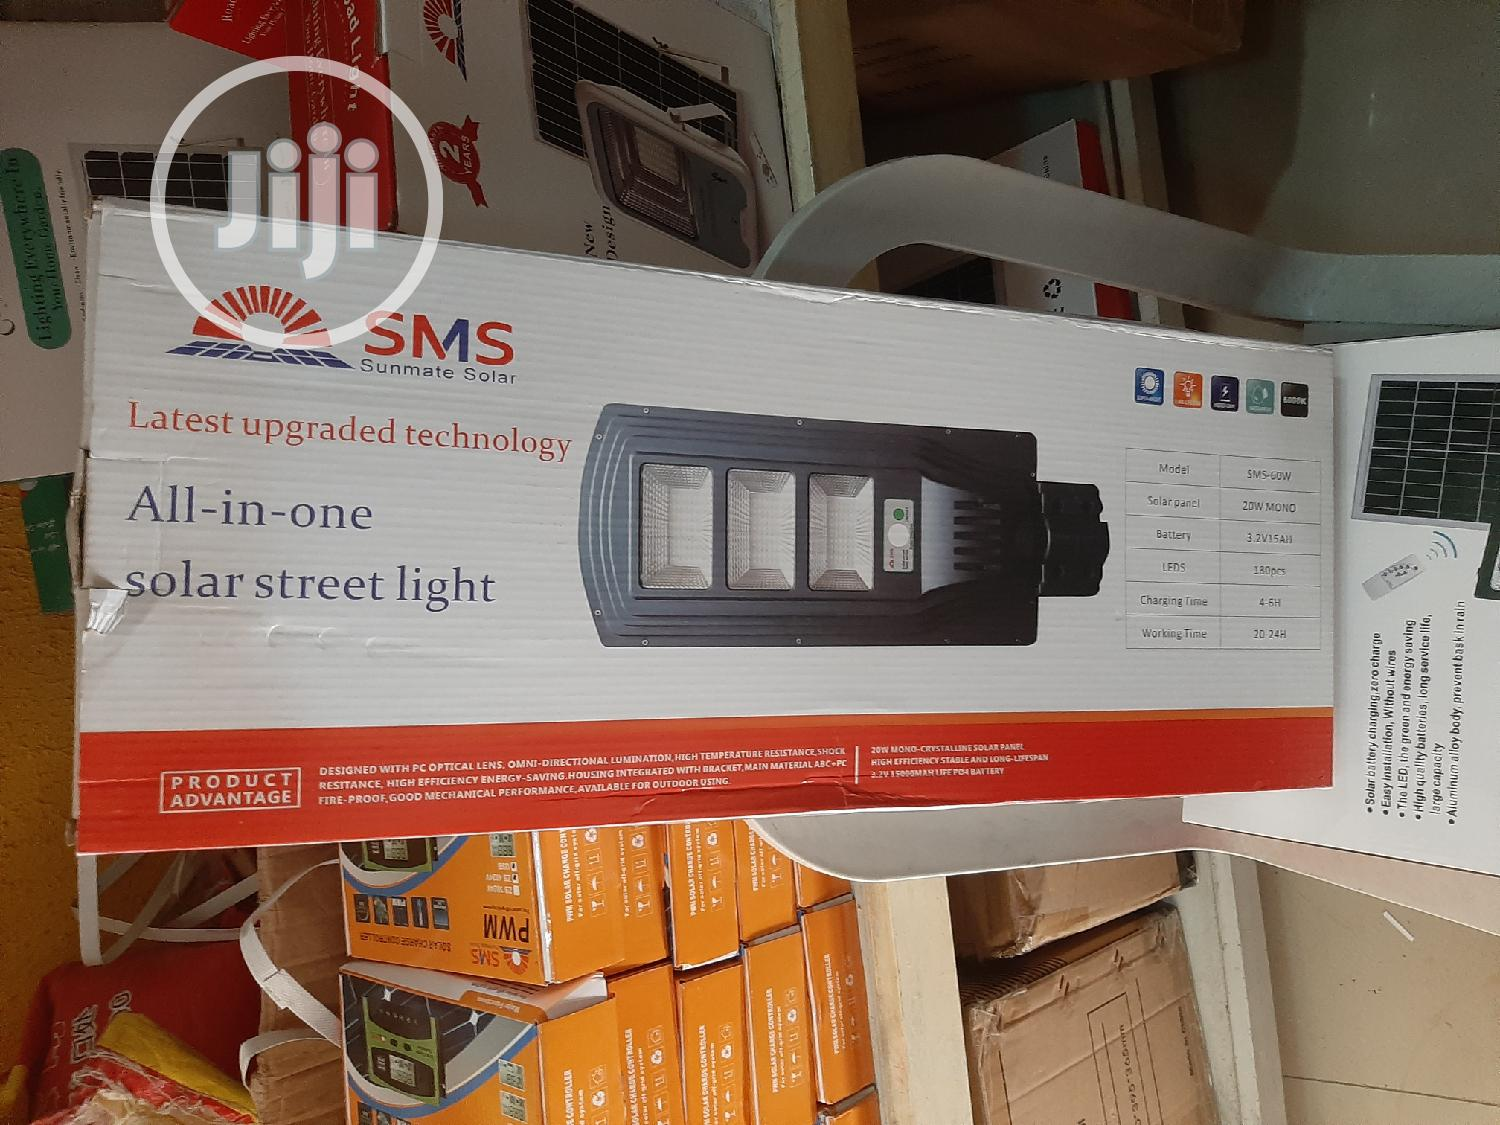 90watt SMS All in One Solar Street Light Is Now Available